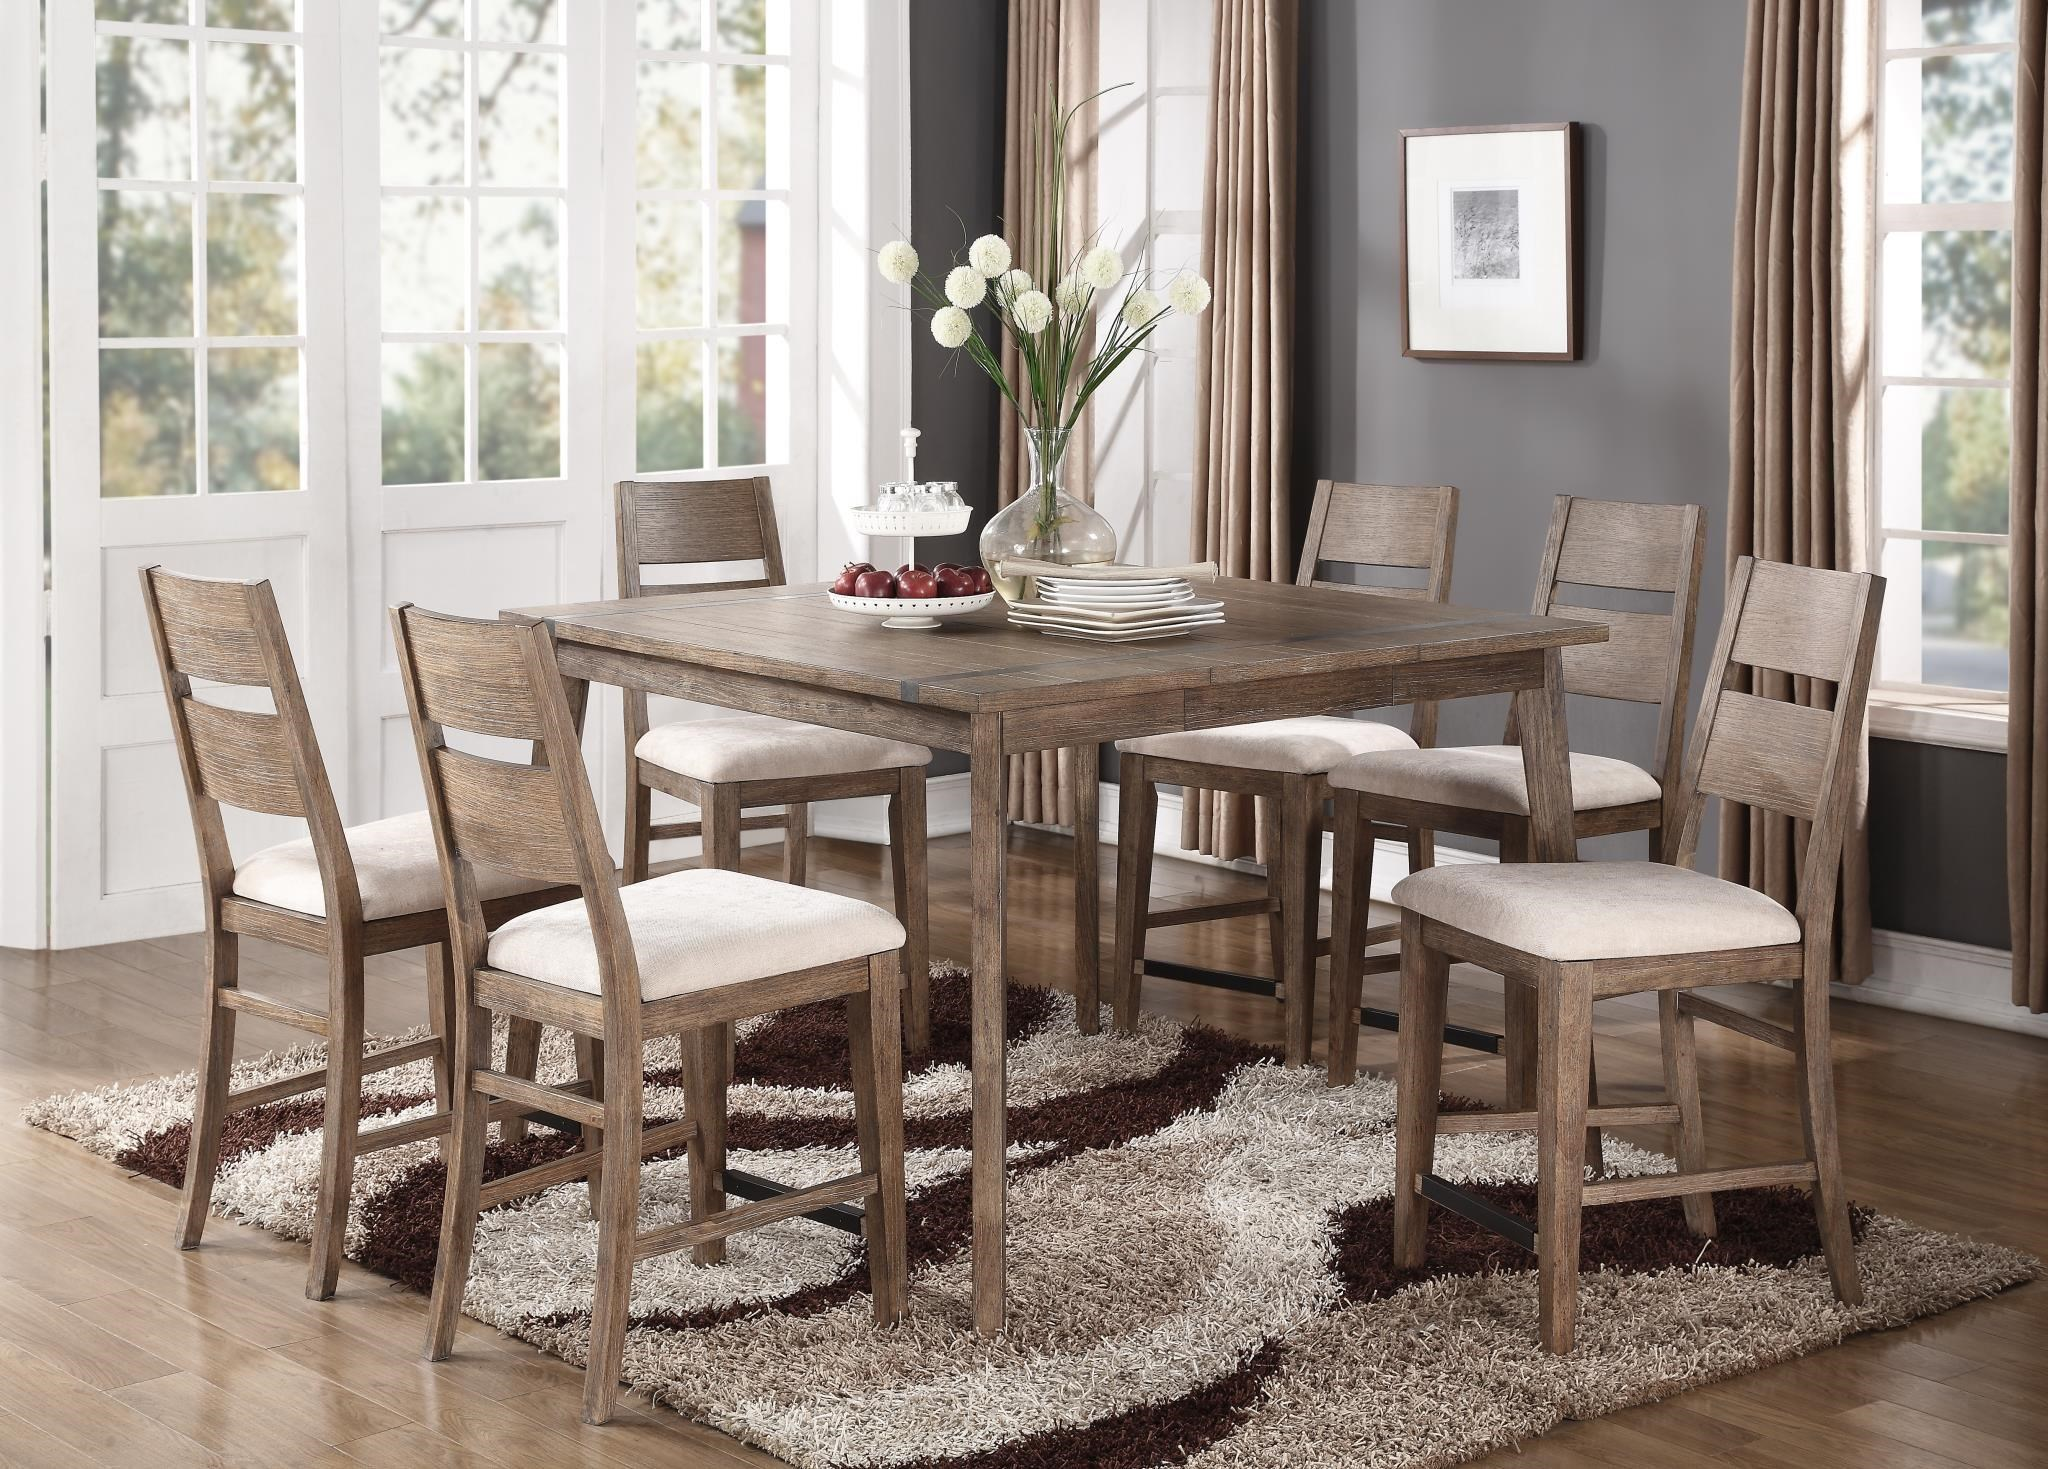 Emerald Viewpoint 7 Piece Gathering Height Dining Set